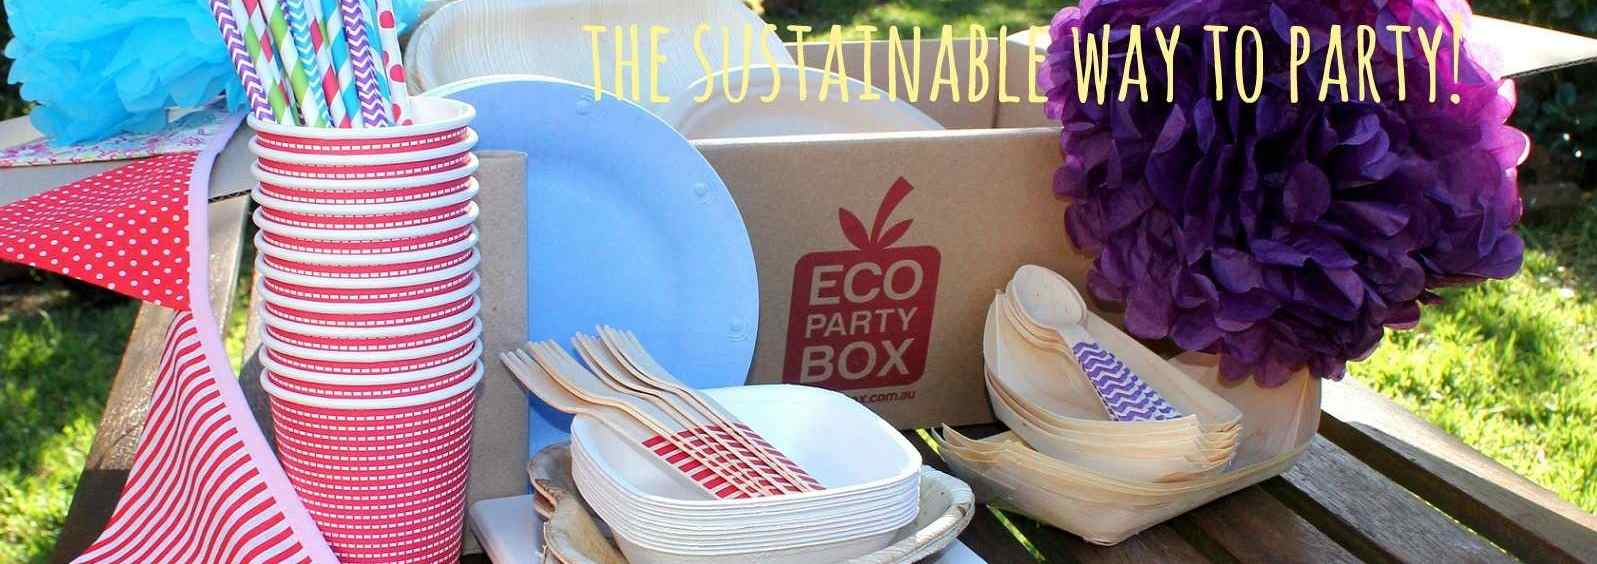 Eco Party Box helps you party sustainably.